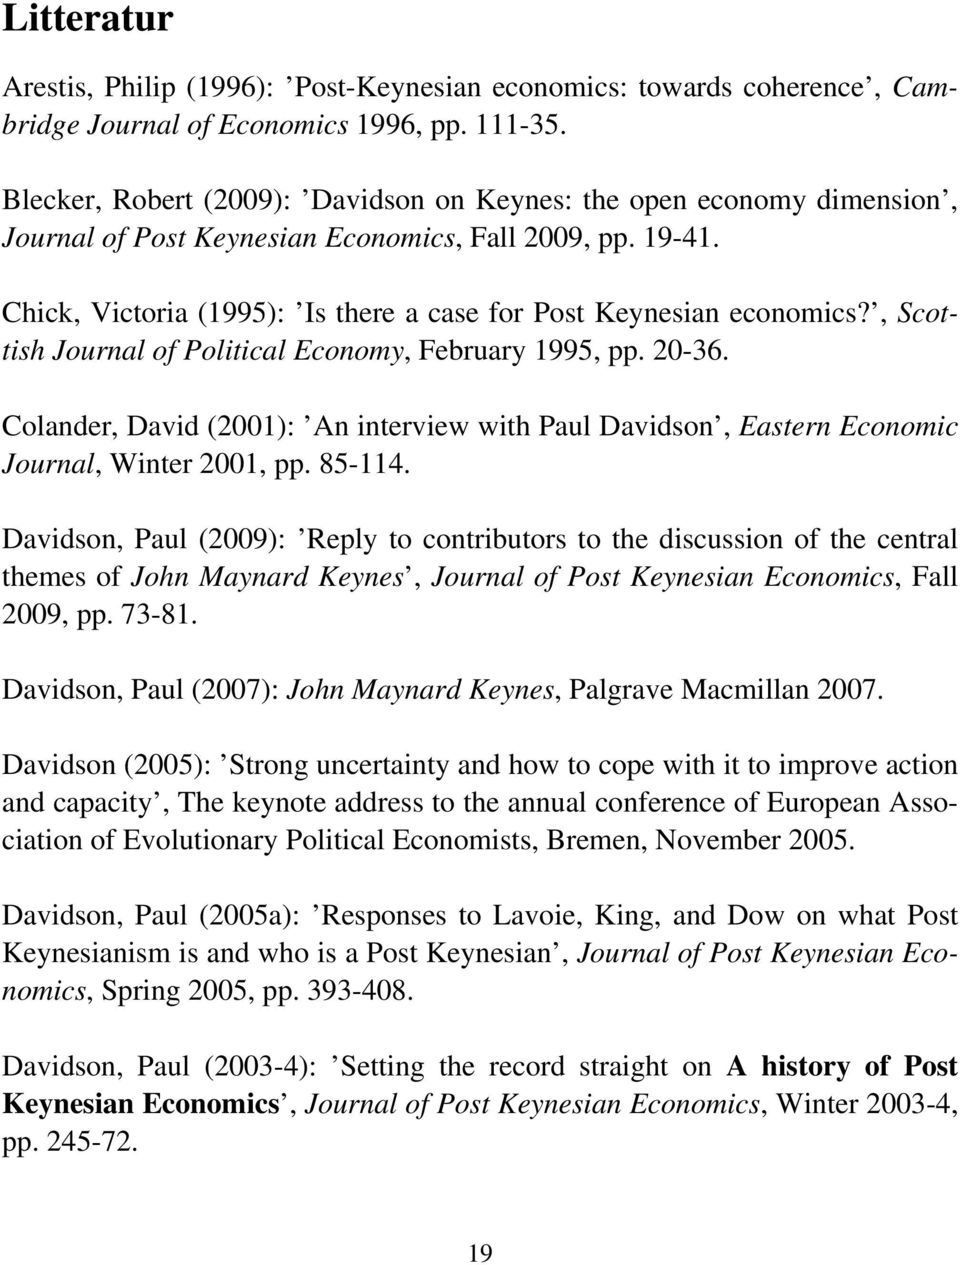 , Scottish Journal of Political Economy, February 1995, pp. 20-36. Colander, David (2001): An interview with Paul Davidson, Eastern Economic Journal, Winter 2001, pp. 85-114.